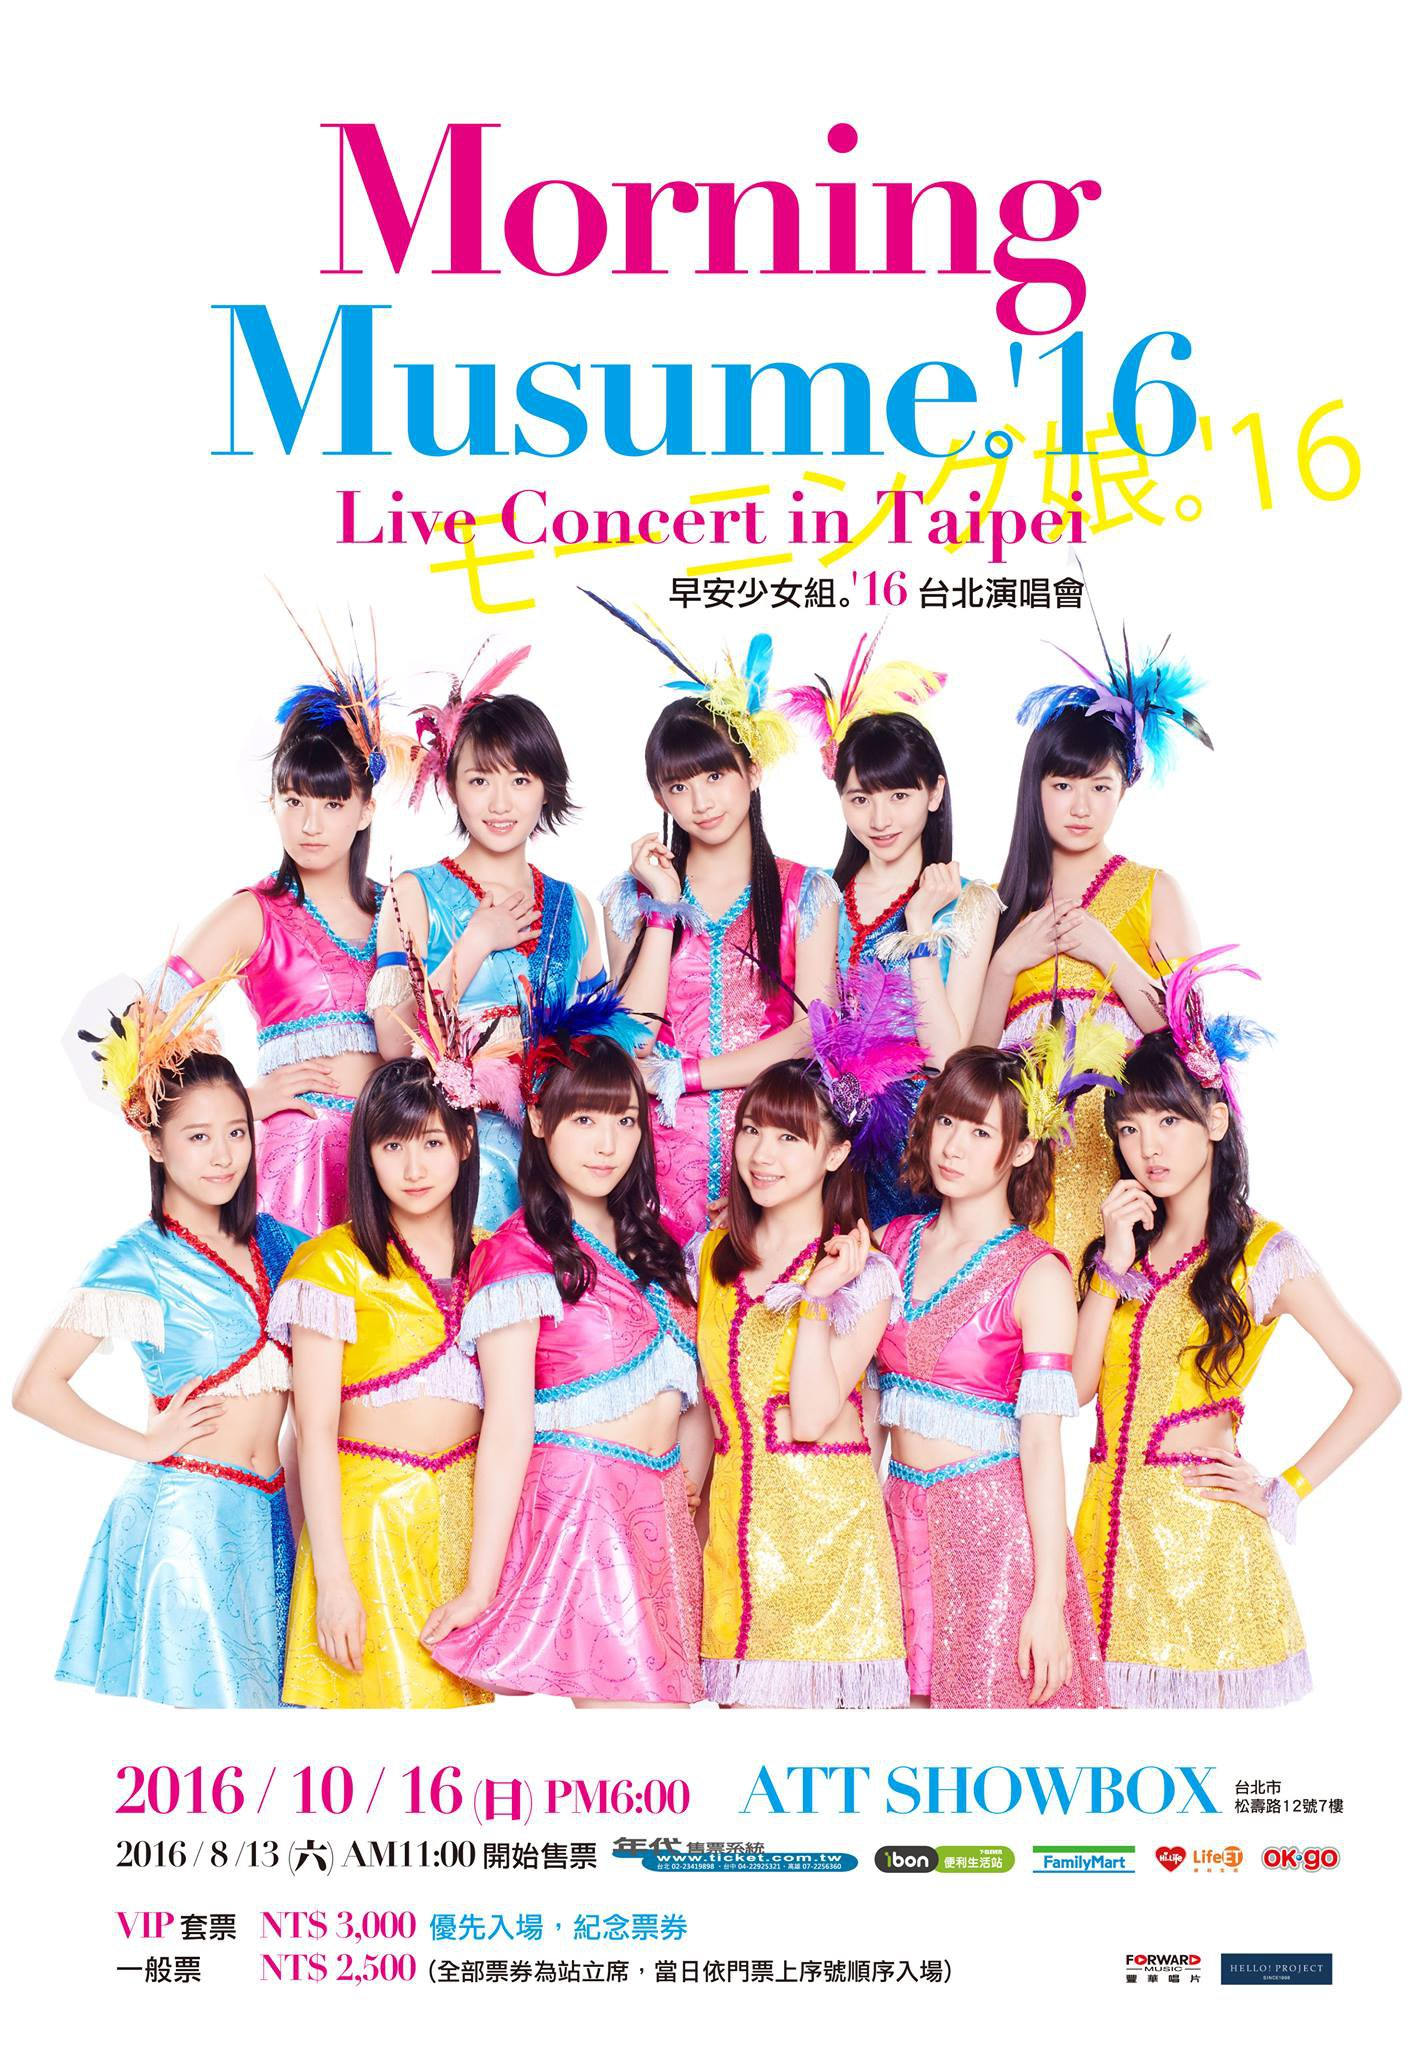 mornig musume 16 promotions